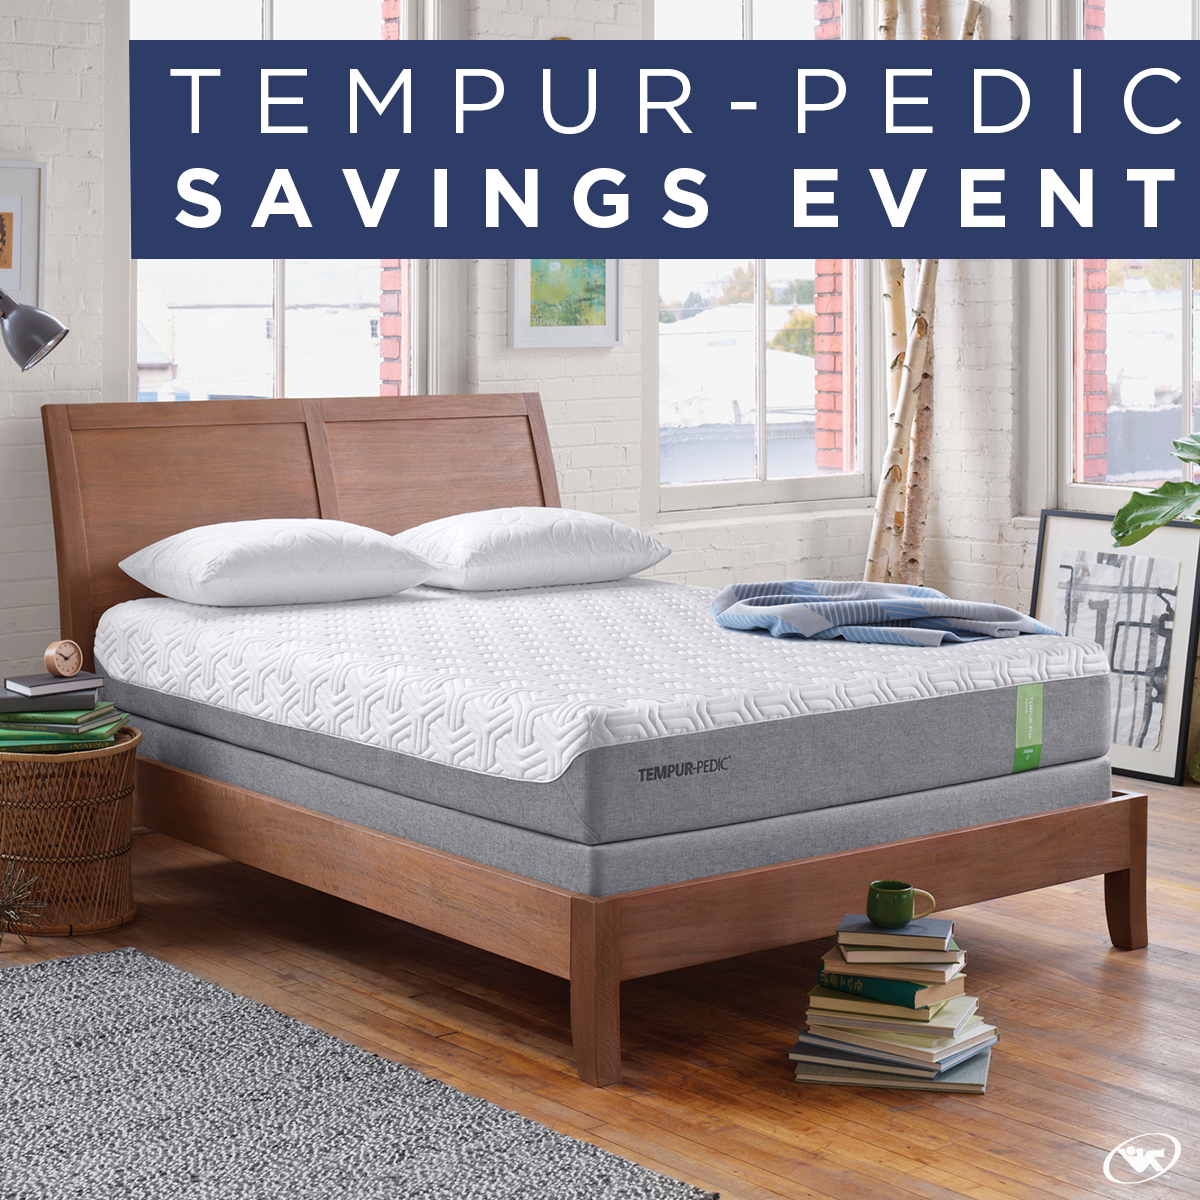 rest easy and save on select tempur pedic products enjoy up to 400